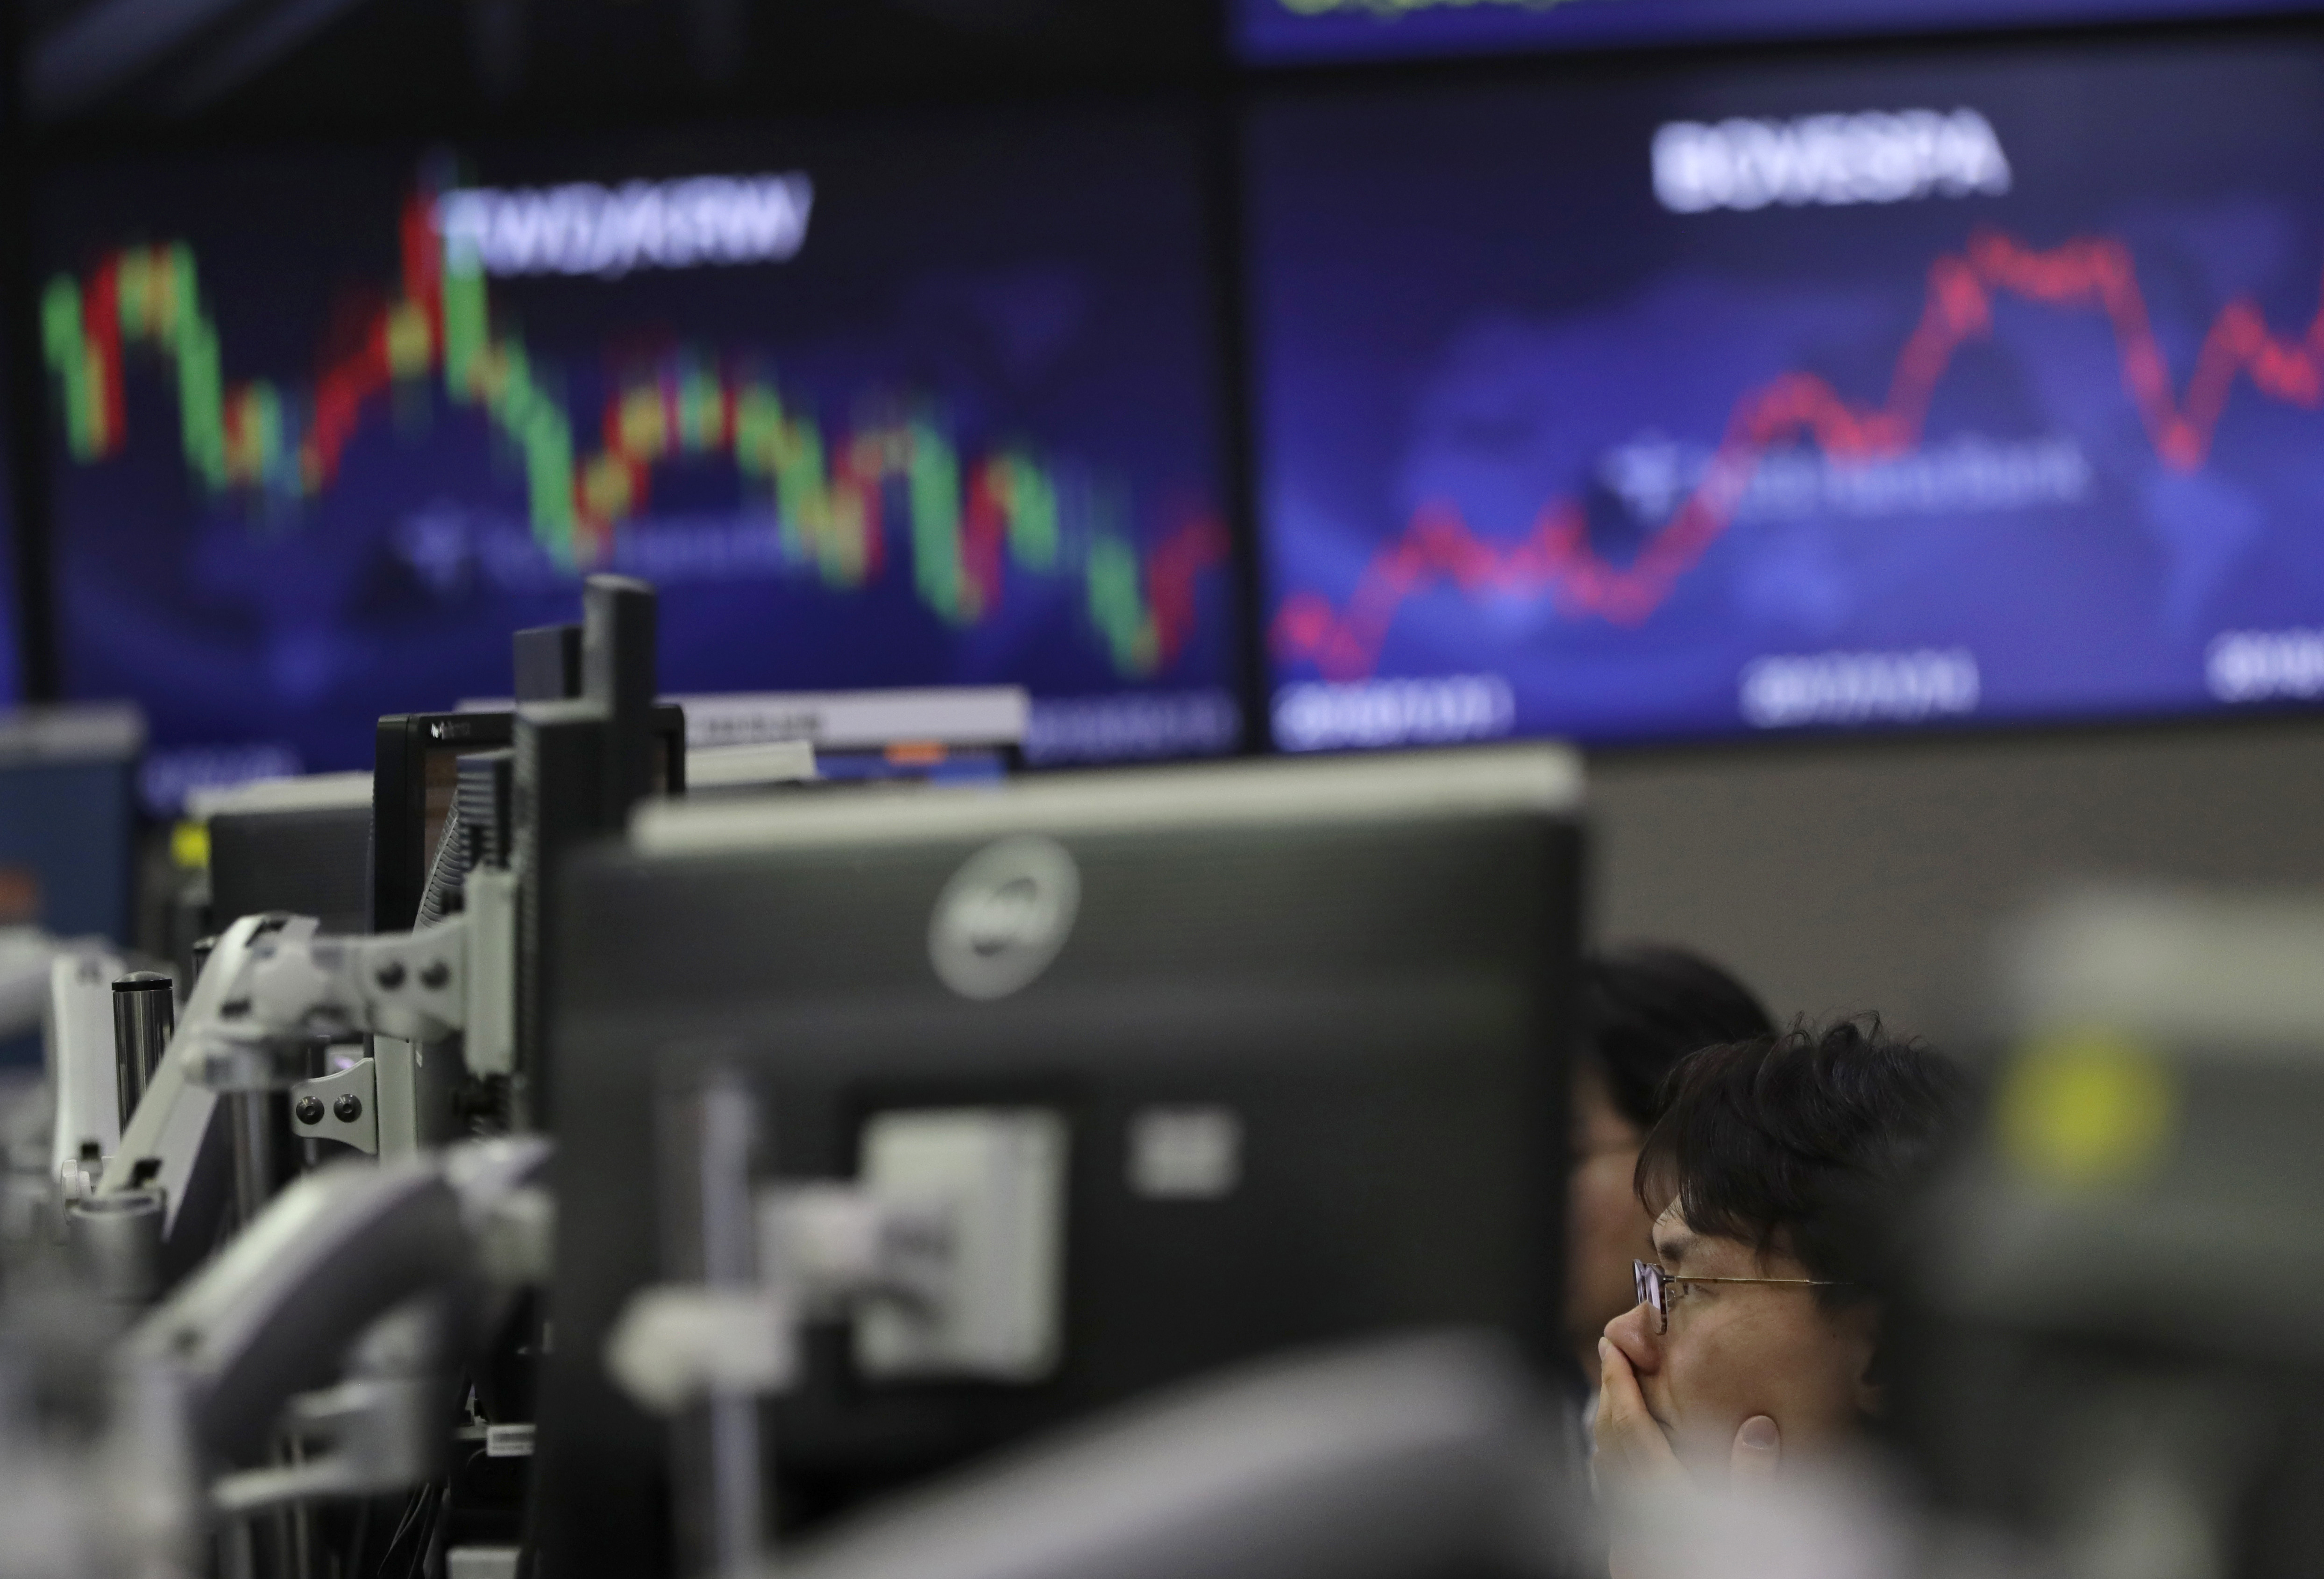 A currency trader watches computer monitors at the foreign exchange dealing room in Seoul, South Korea, Wednesday, Nov. 21, 2018. Asian markets fell on Wednesday after a trade dispute between the U.S. and China stalled a weekend meeting, dimming hopes that it could be resolved once their leaders meet. (AP Photo/Lee Jin-man)